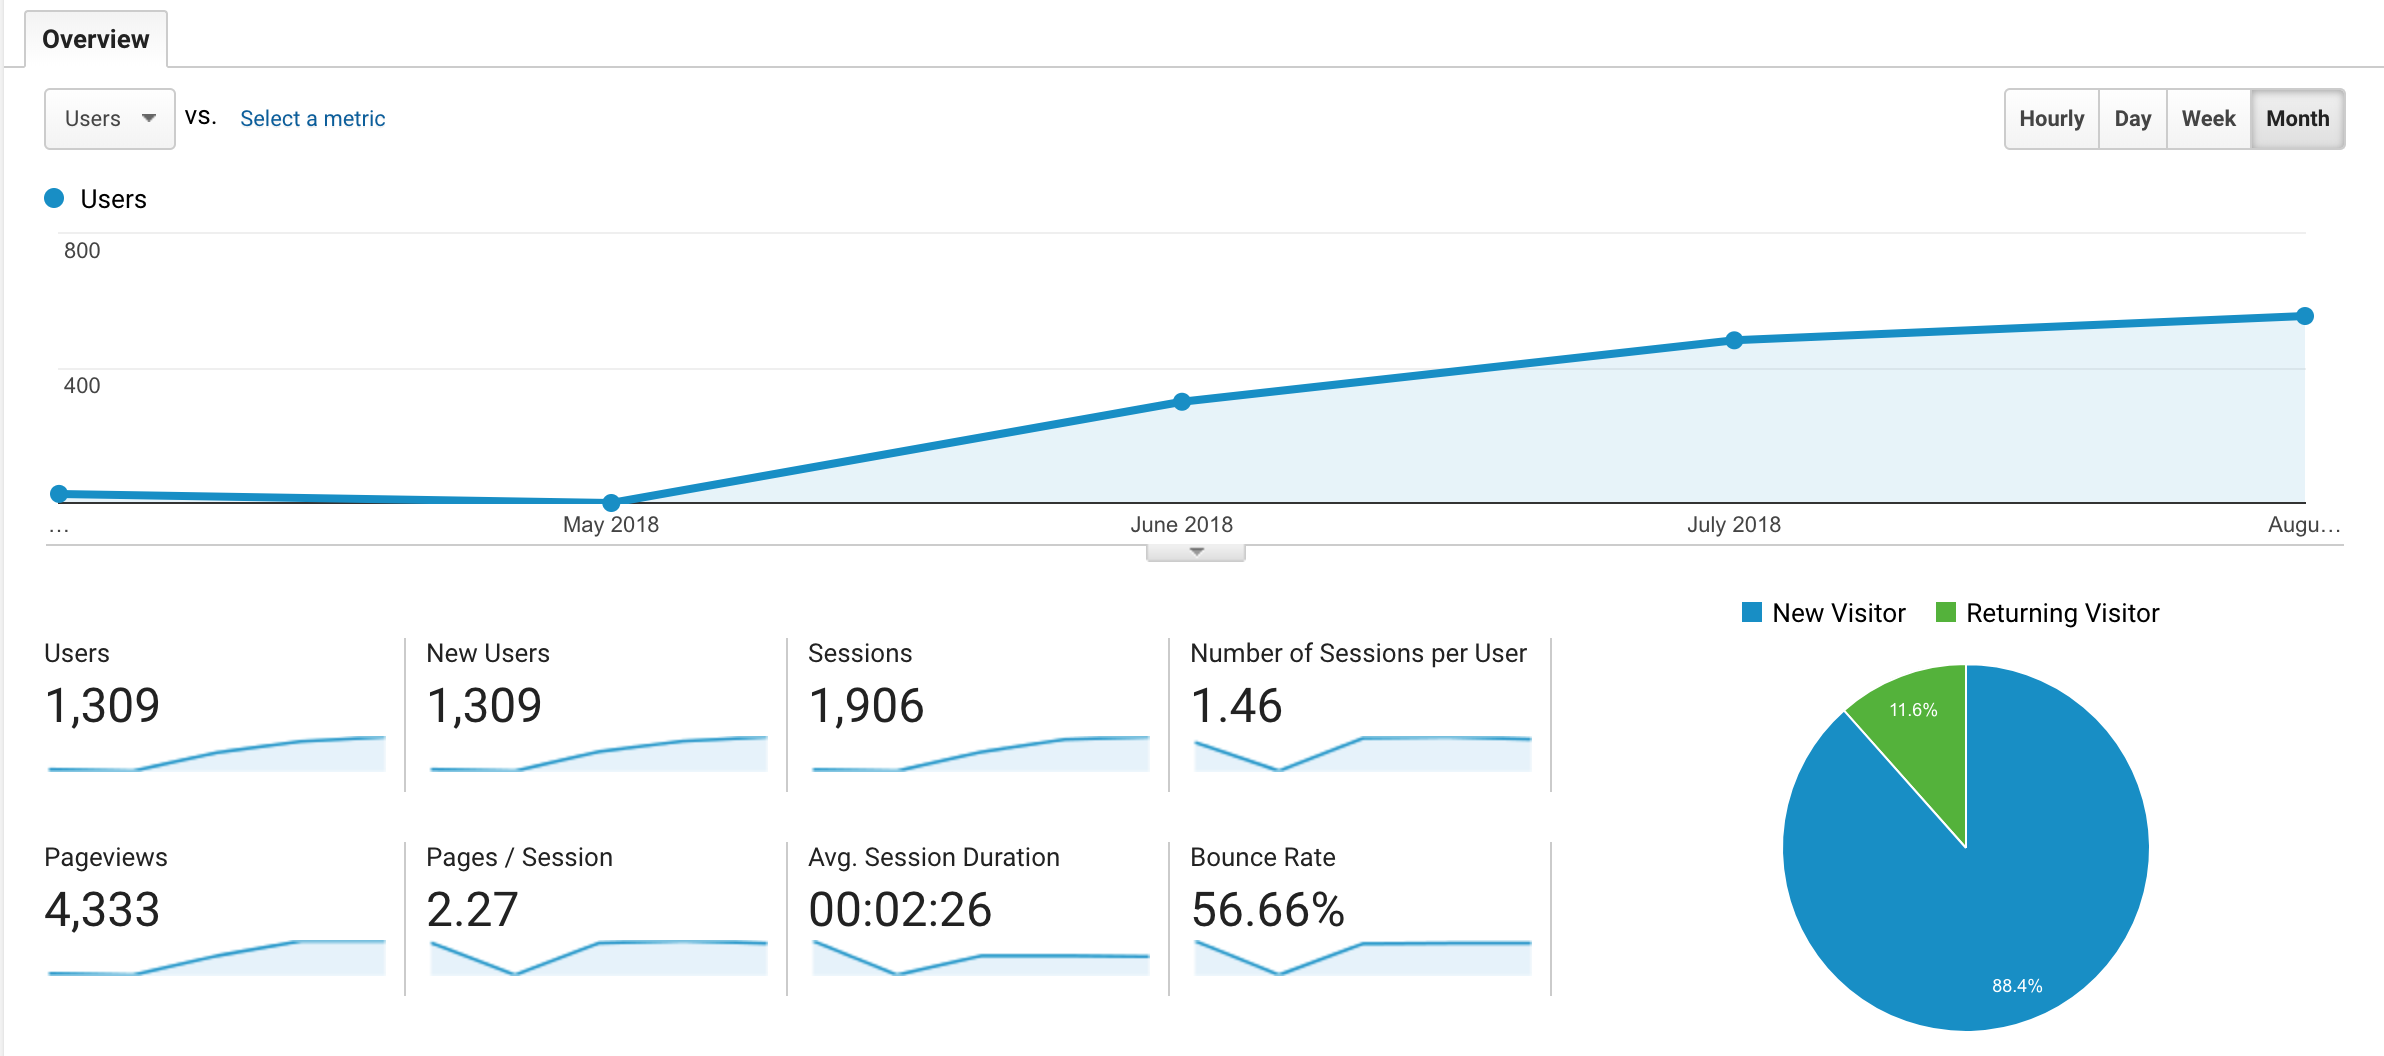 insurance marketing user data in August for client 2 that shows proof of insurance company growth